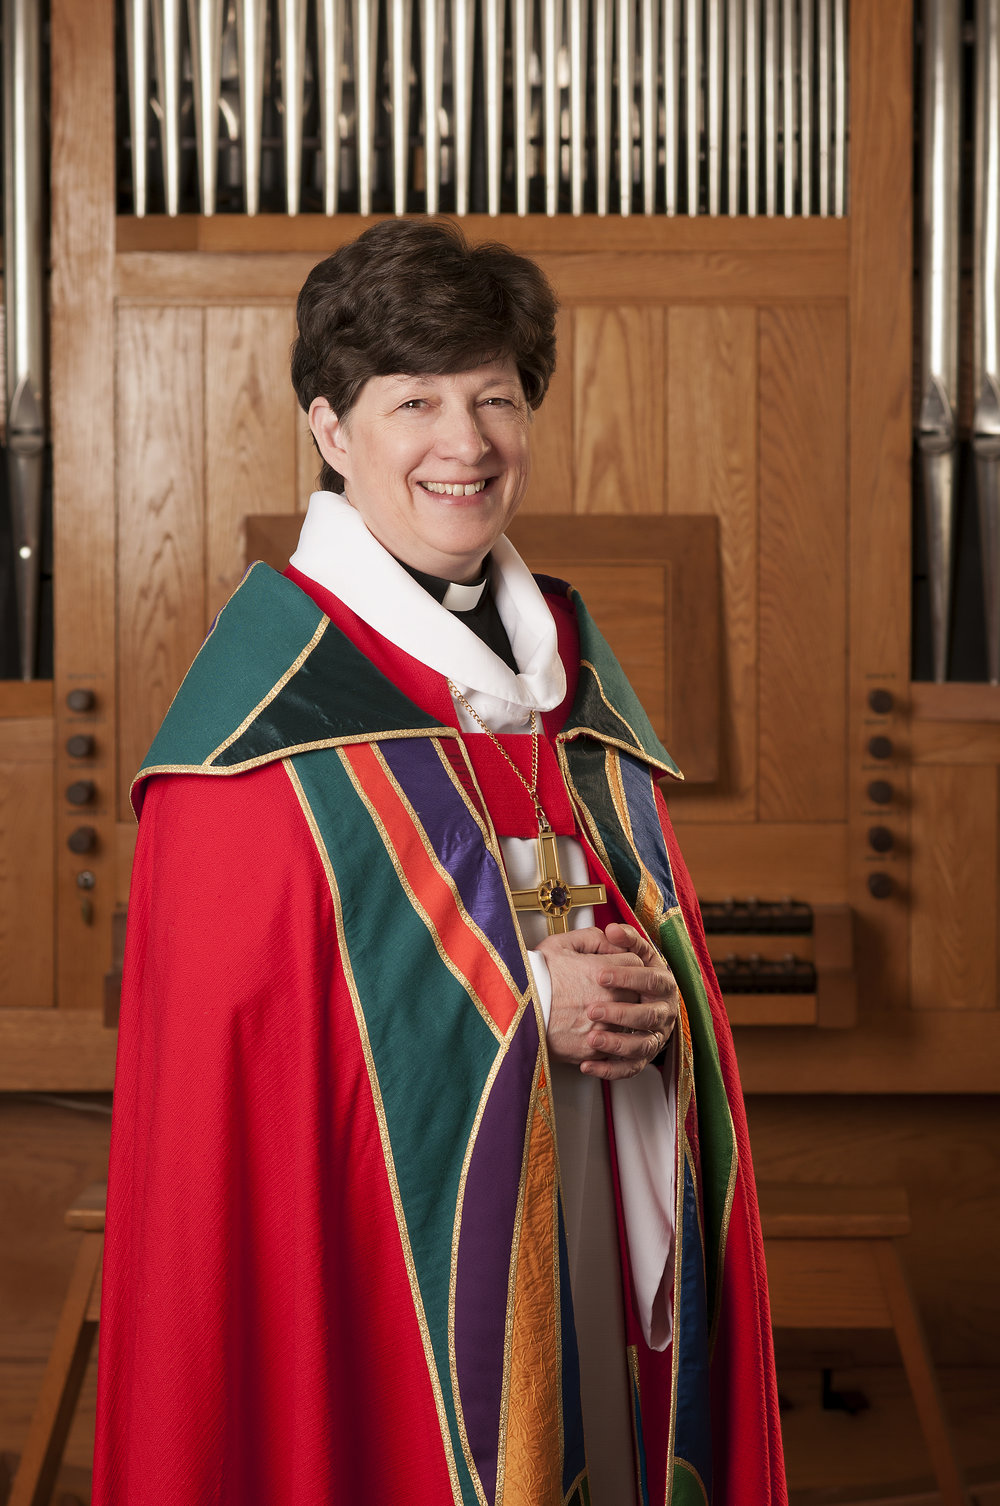 ELCA Presiding Bishop the Rev. Elizabeth A. Eaton. Credit: ELCA.